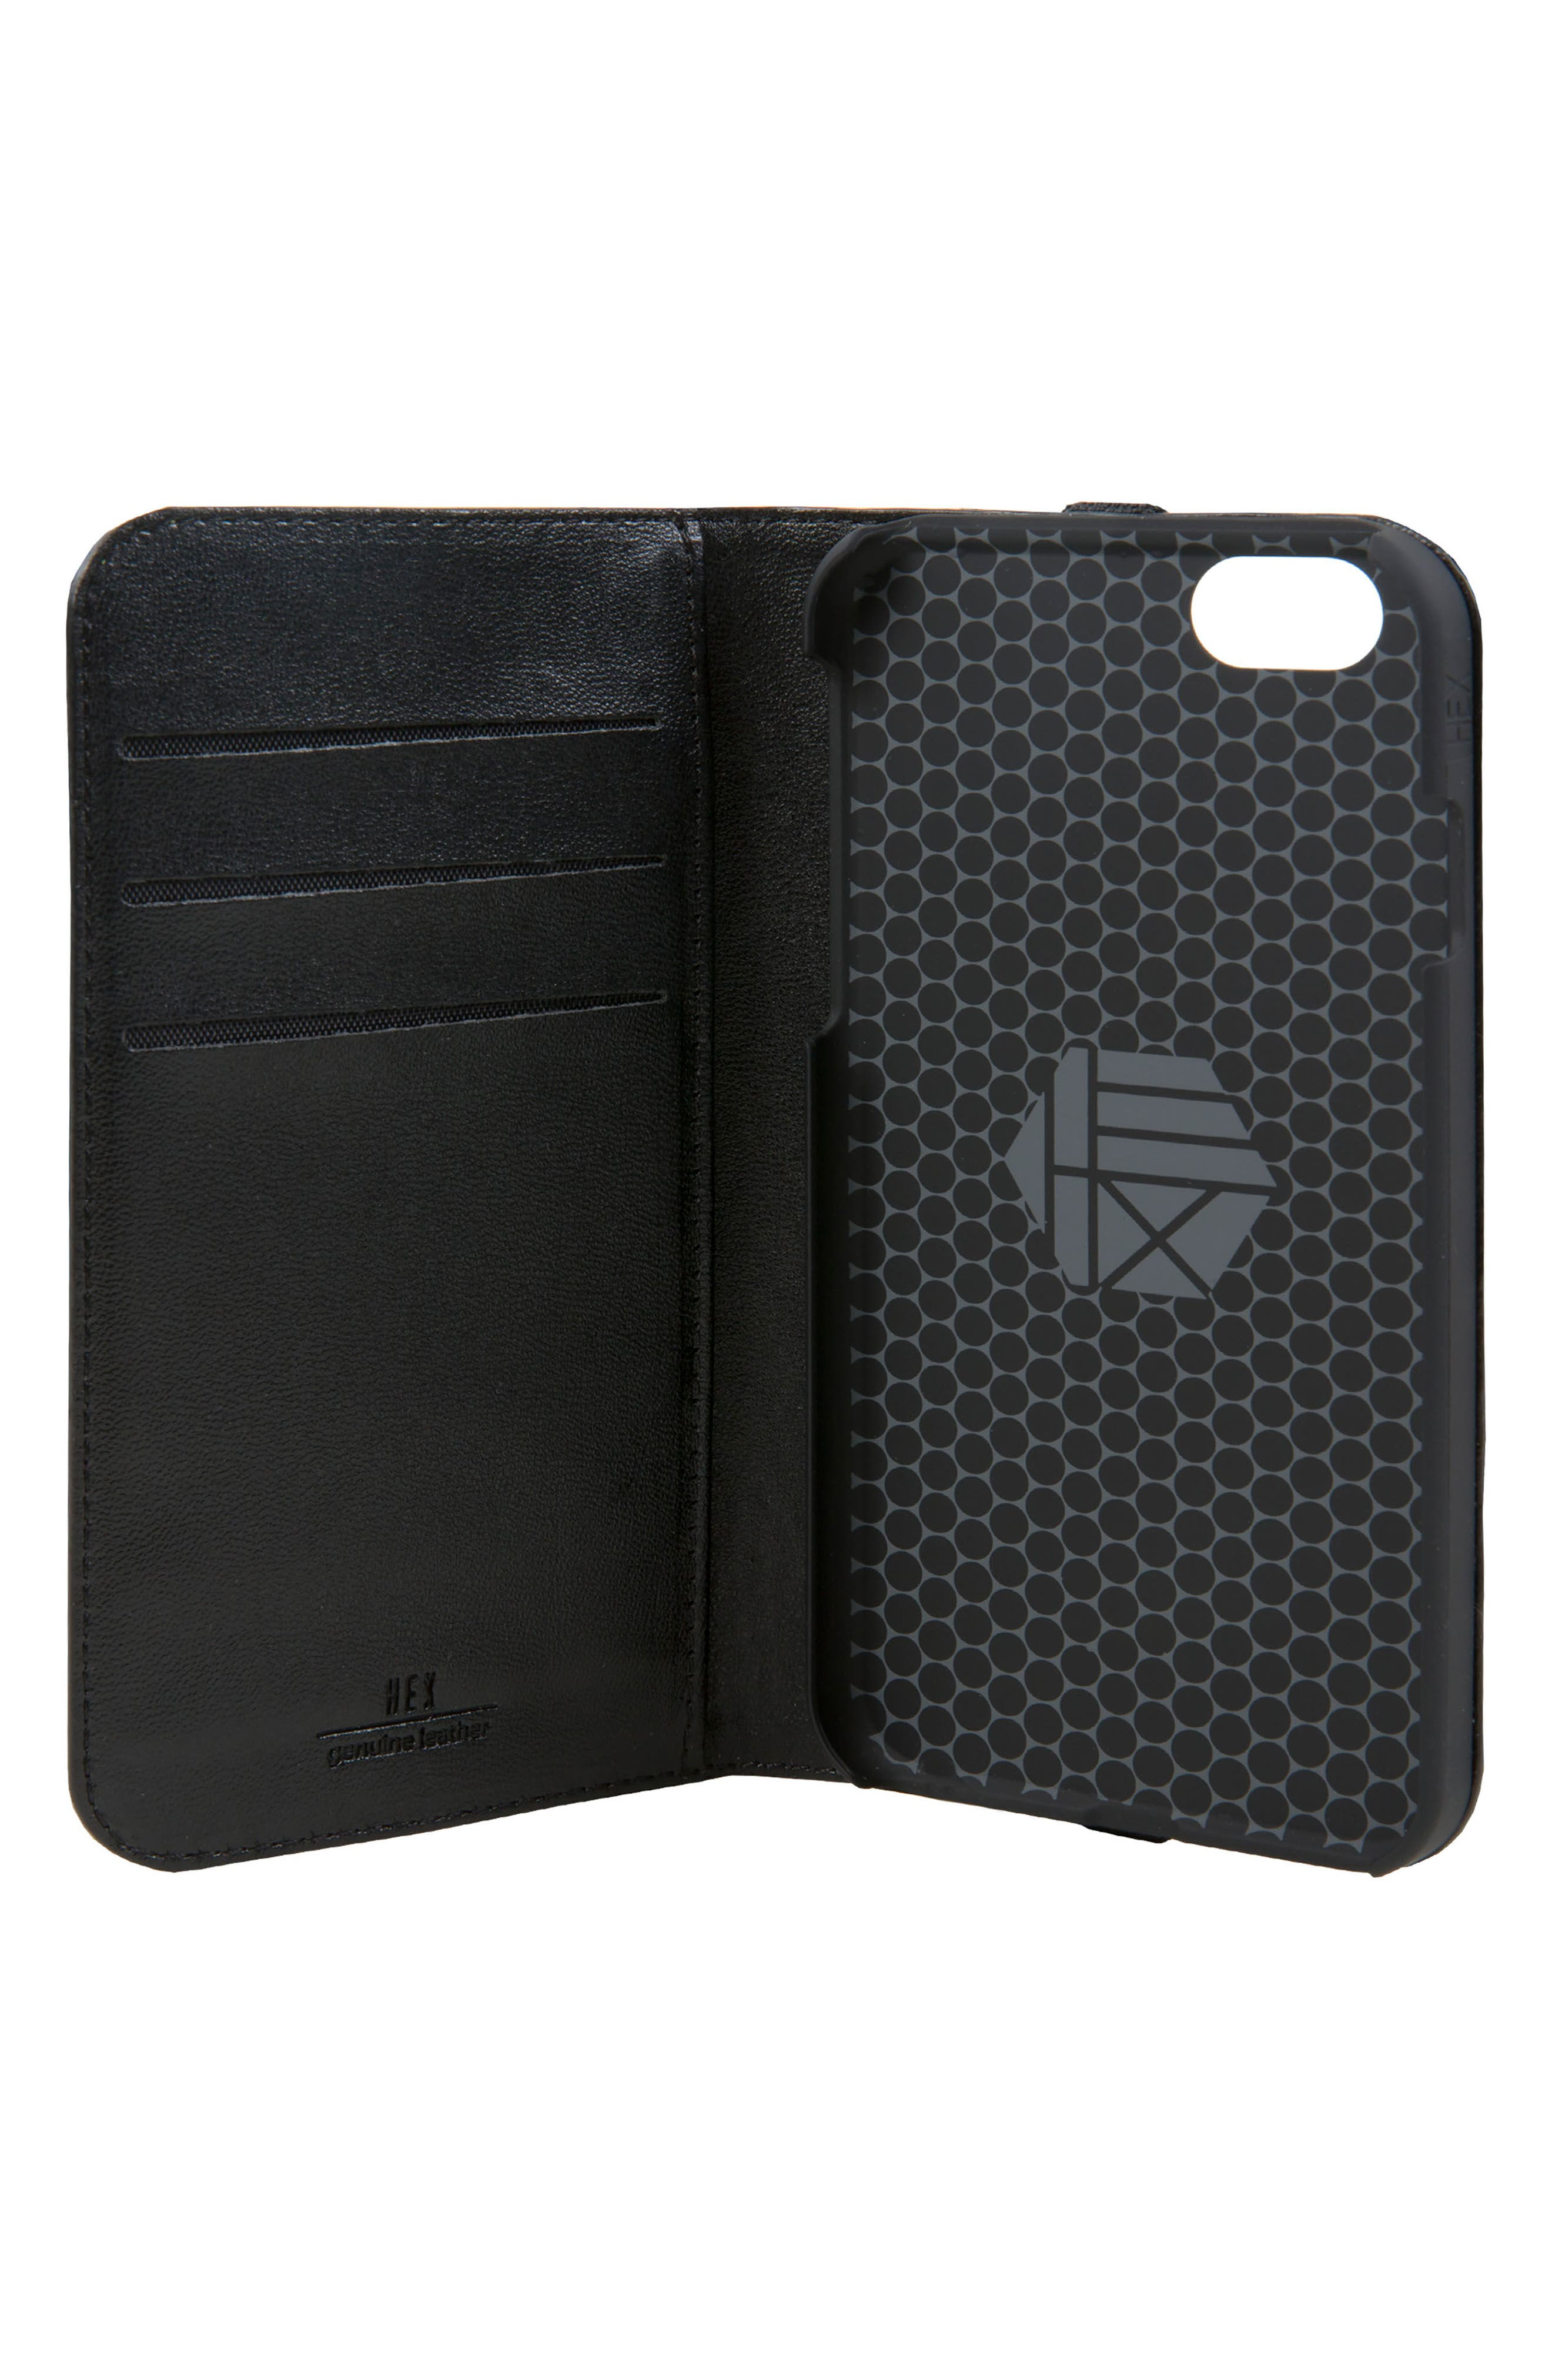 Icon iPhone 6/6s/7/8 Wallet Case,                             Alternate thumbnail 4, color,                             004